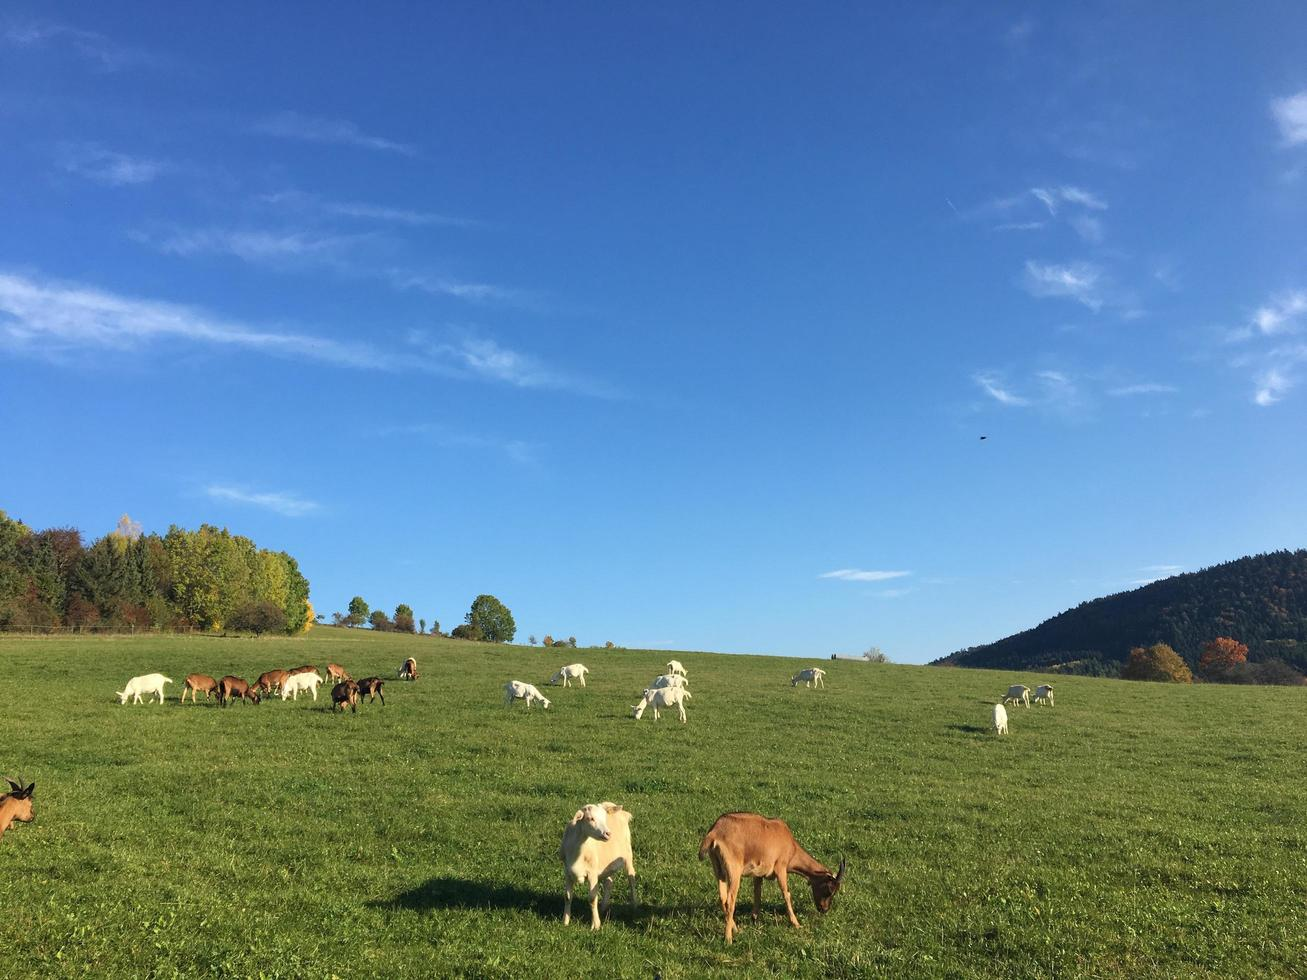 Goats on the field photo